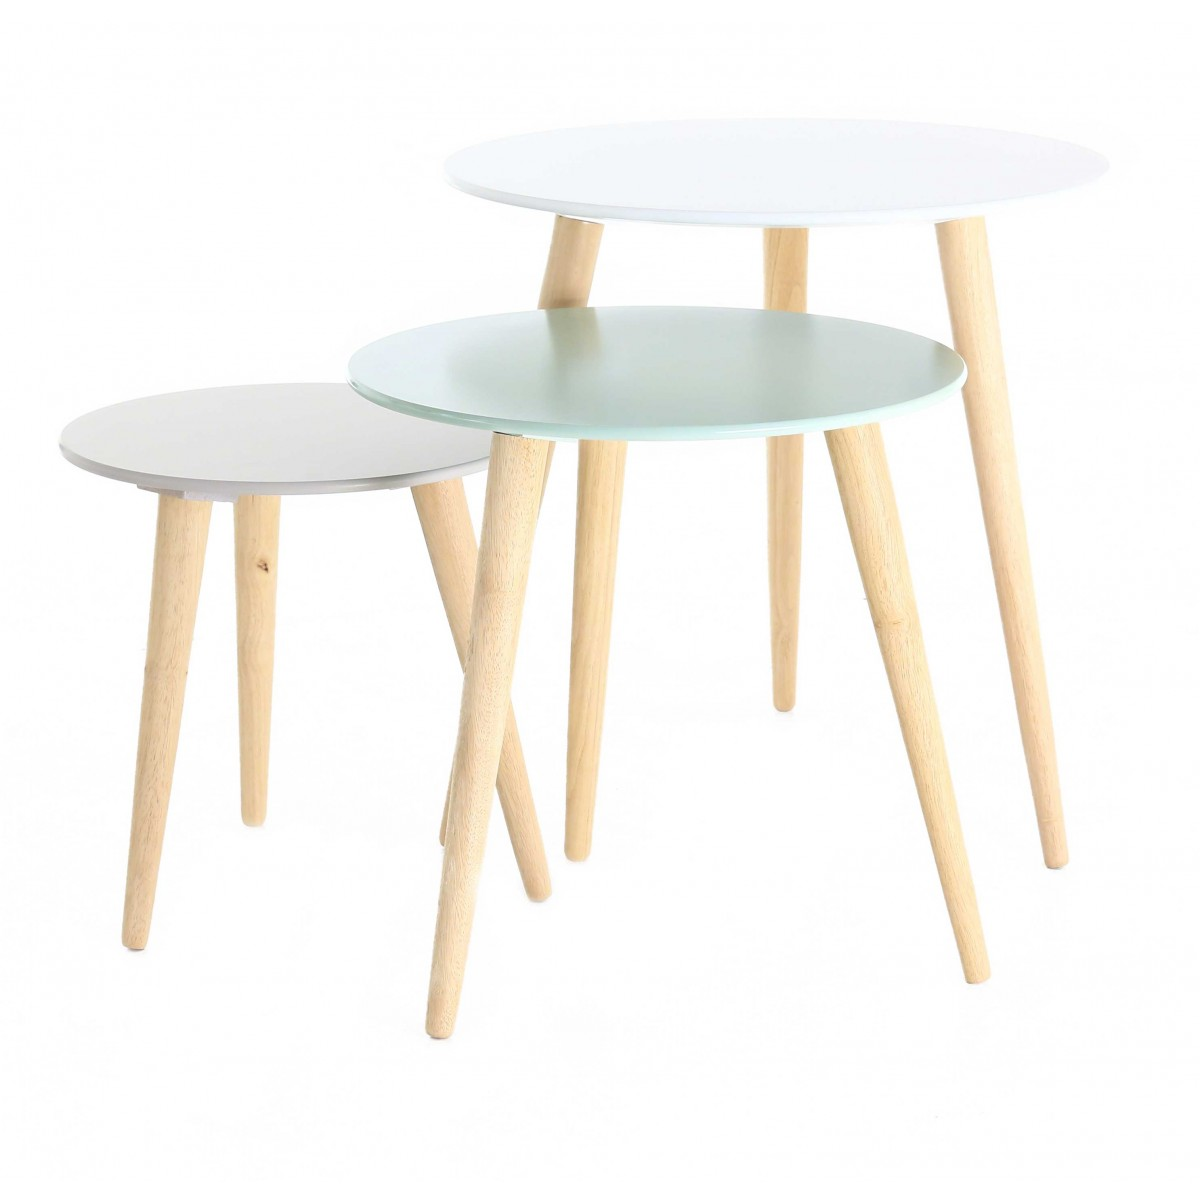 Set de 3 tables gigognes rondes scandinaves zago store - Table gigogne blanche ...